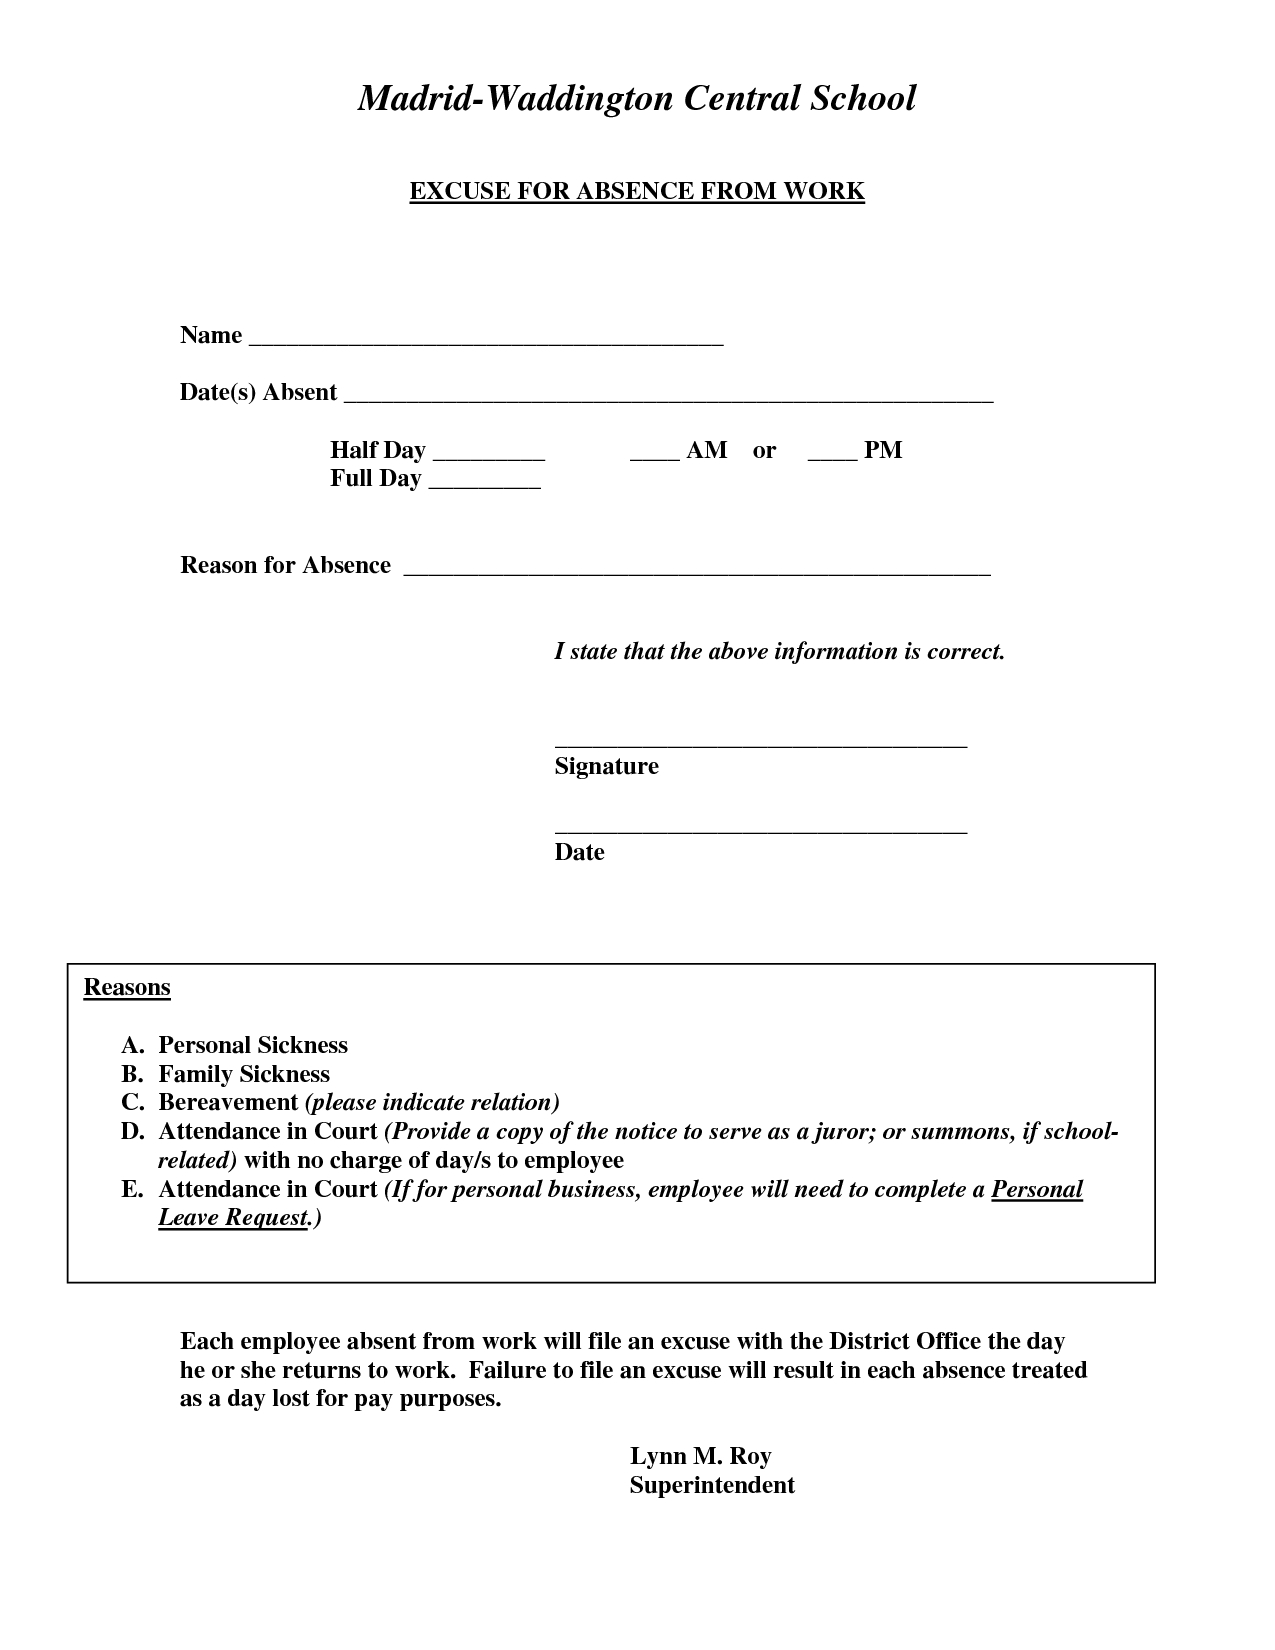 Doctors Excuse For Work Template | Excuse For Absence From Work - Free Printable Doctor Excuse Notes